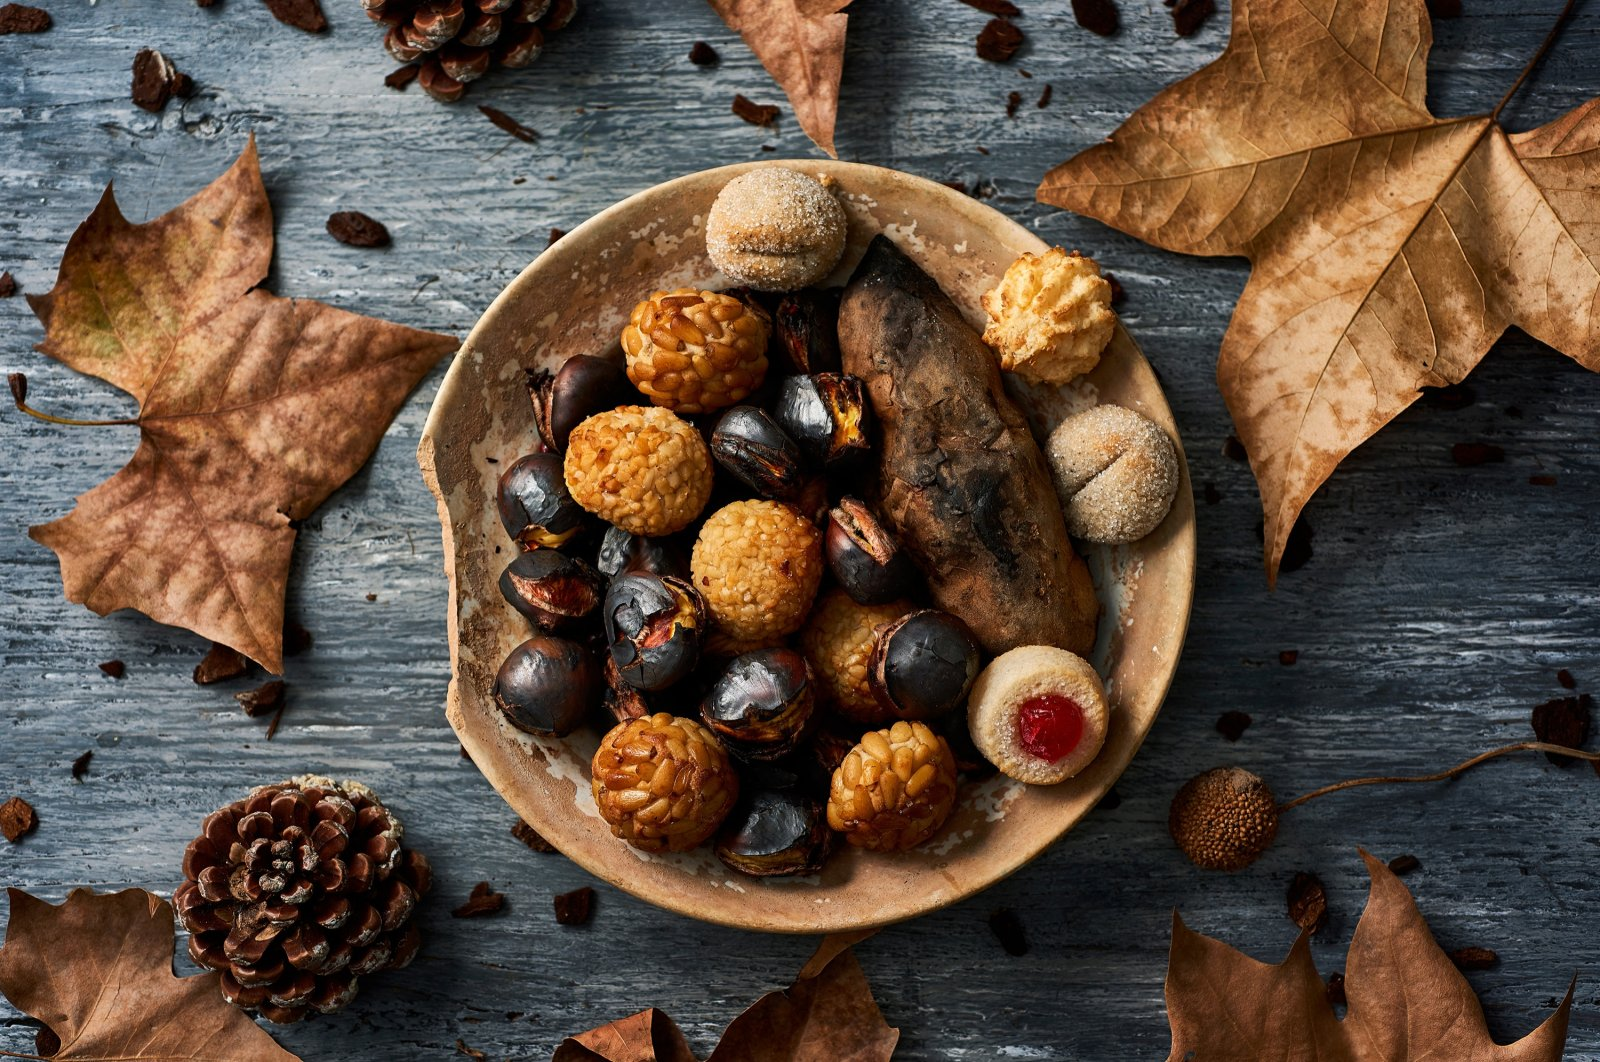 Come fall and cold weather, there are few foods like chestnuts that remind of us of coziness and our childhood. (Shutterstock Photo)